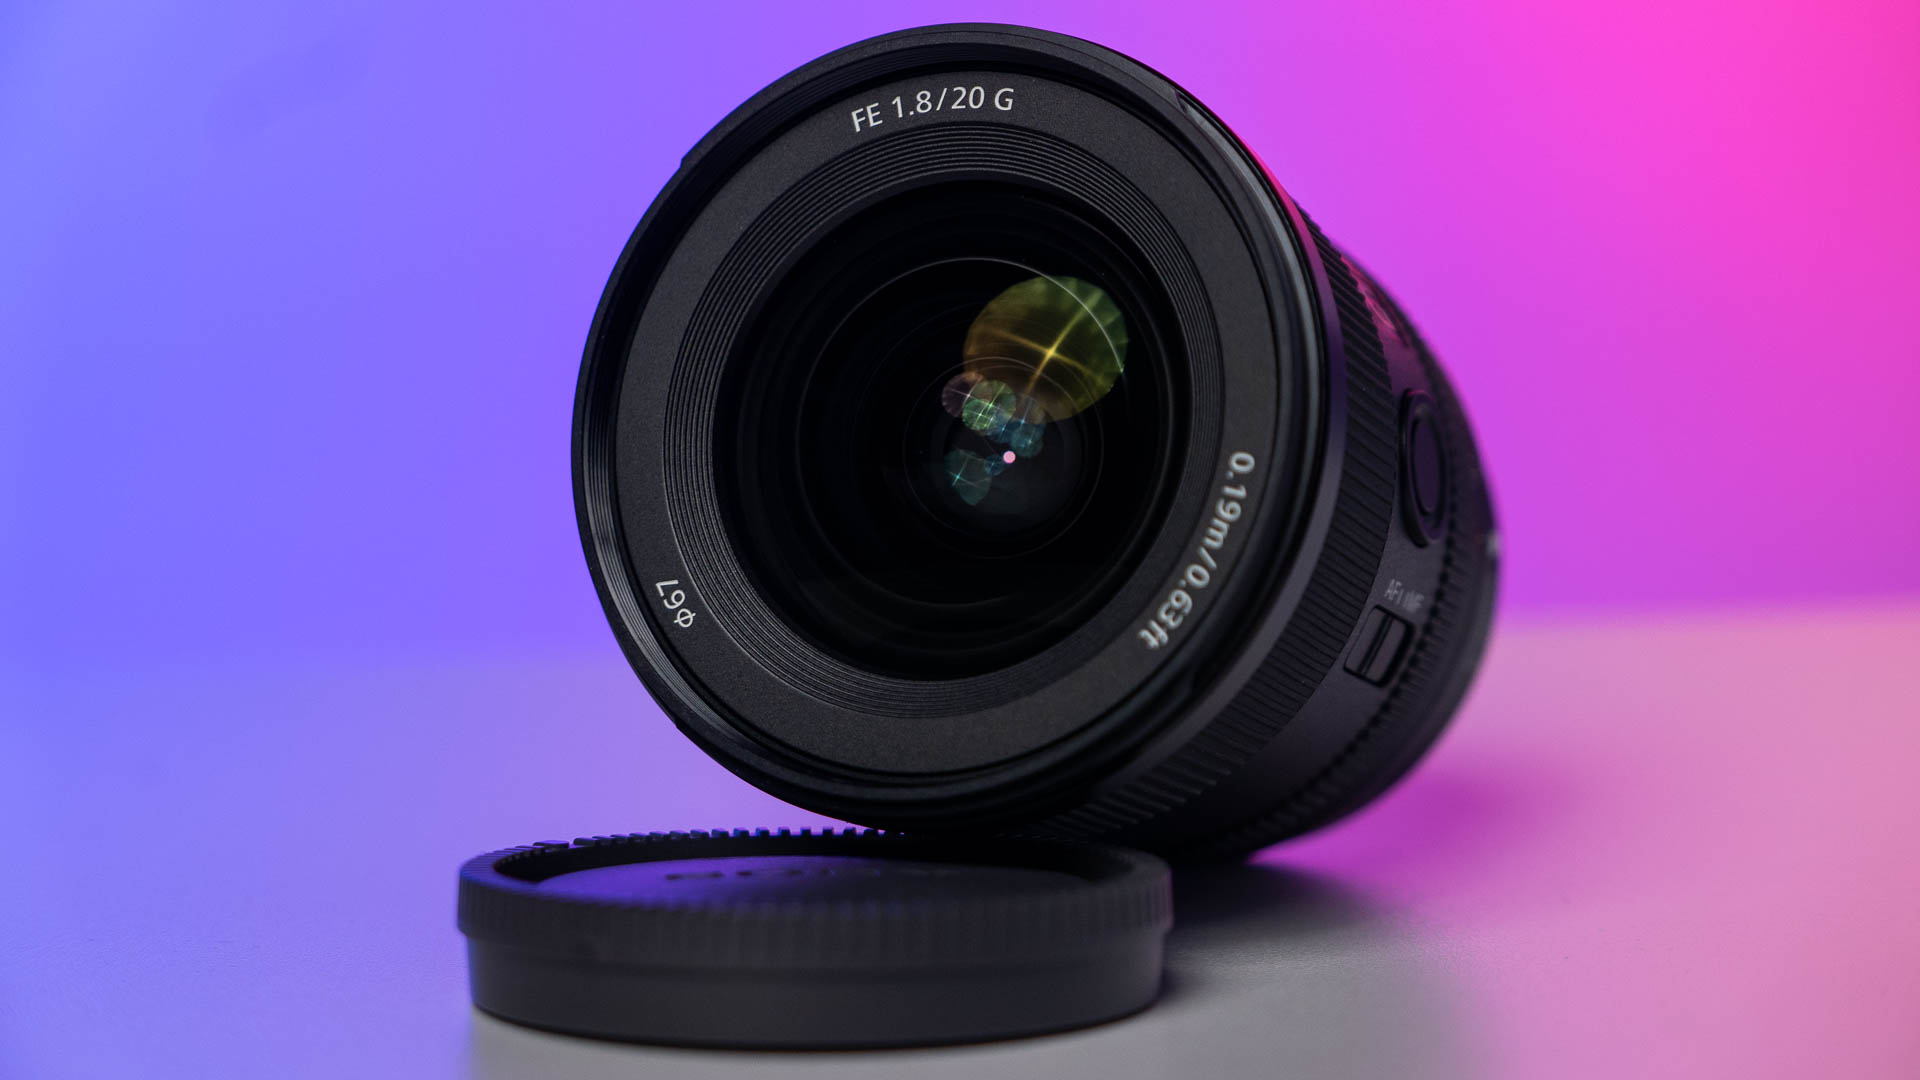 Anuncian el Sony FE 20 mm f/1.8 GM – lente AF ultra gran angular con anillo de apertura manual